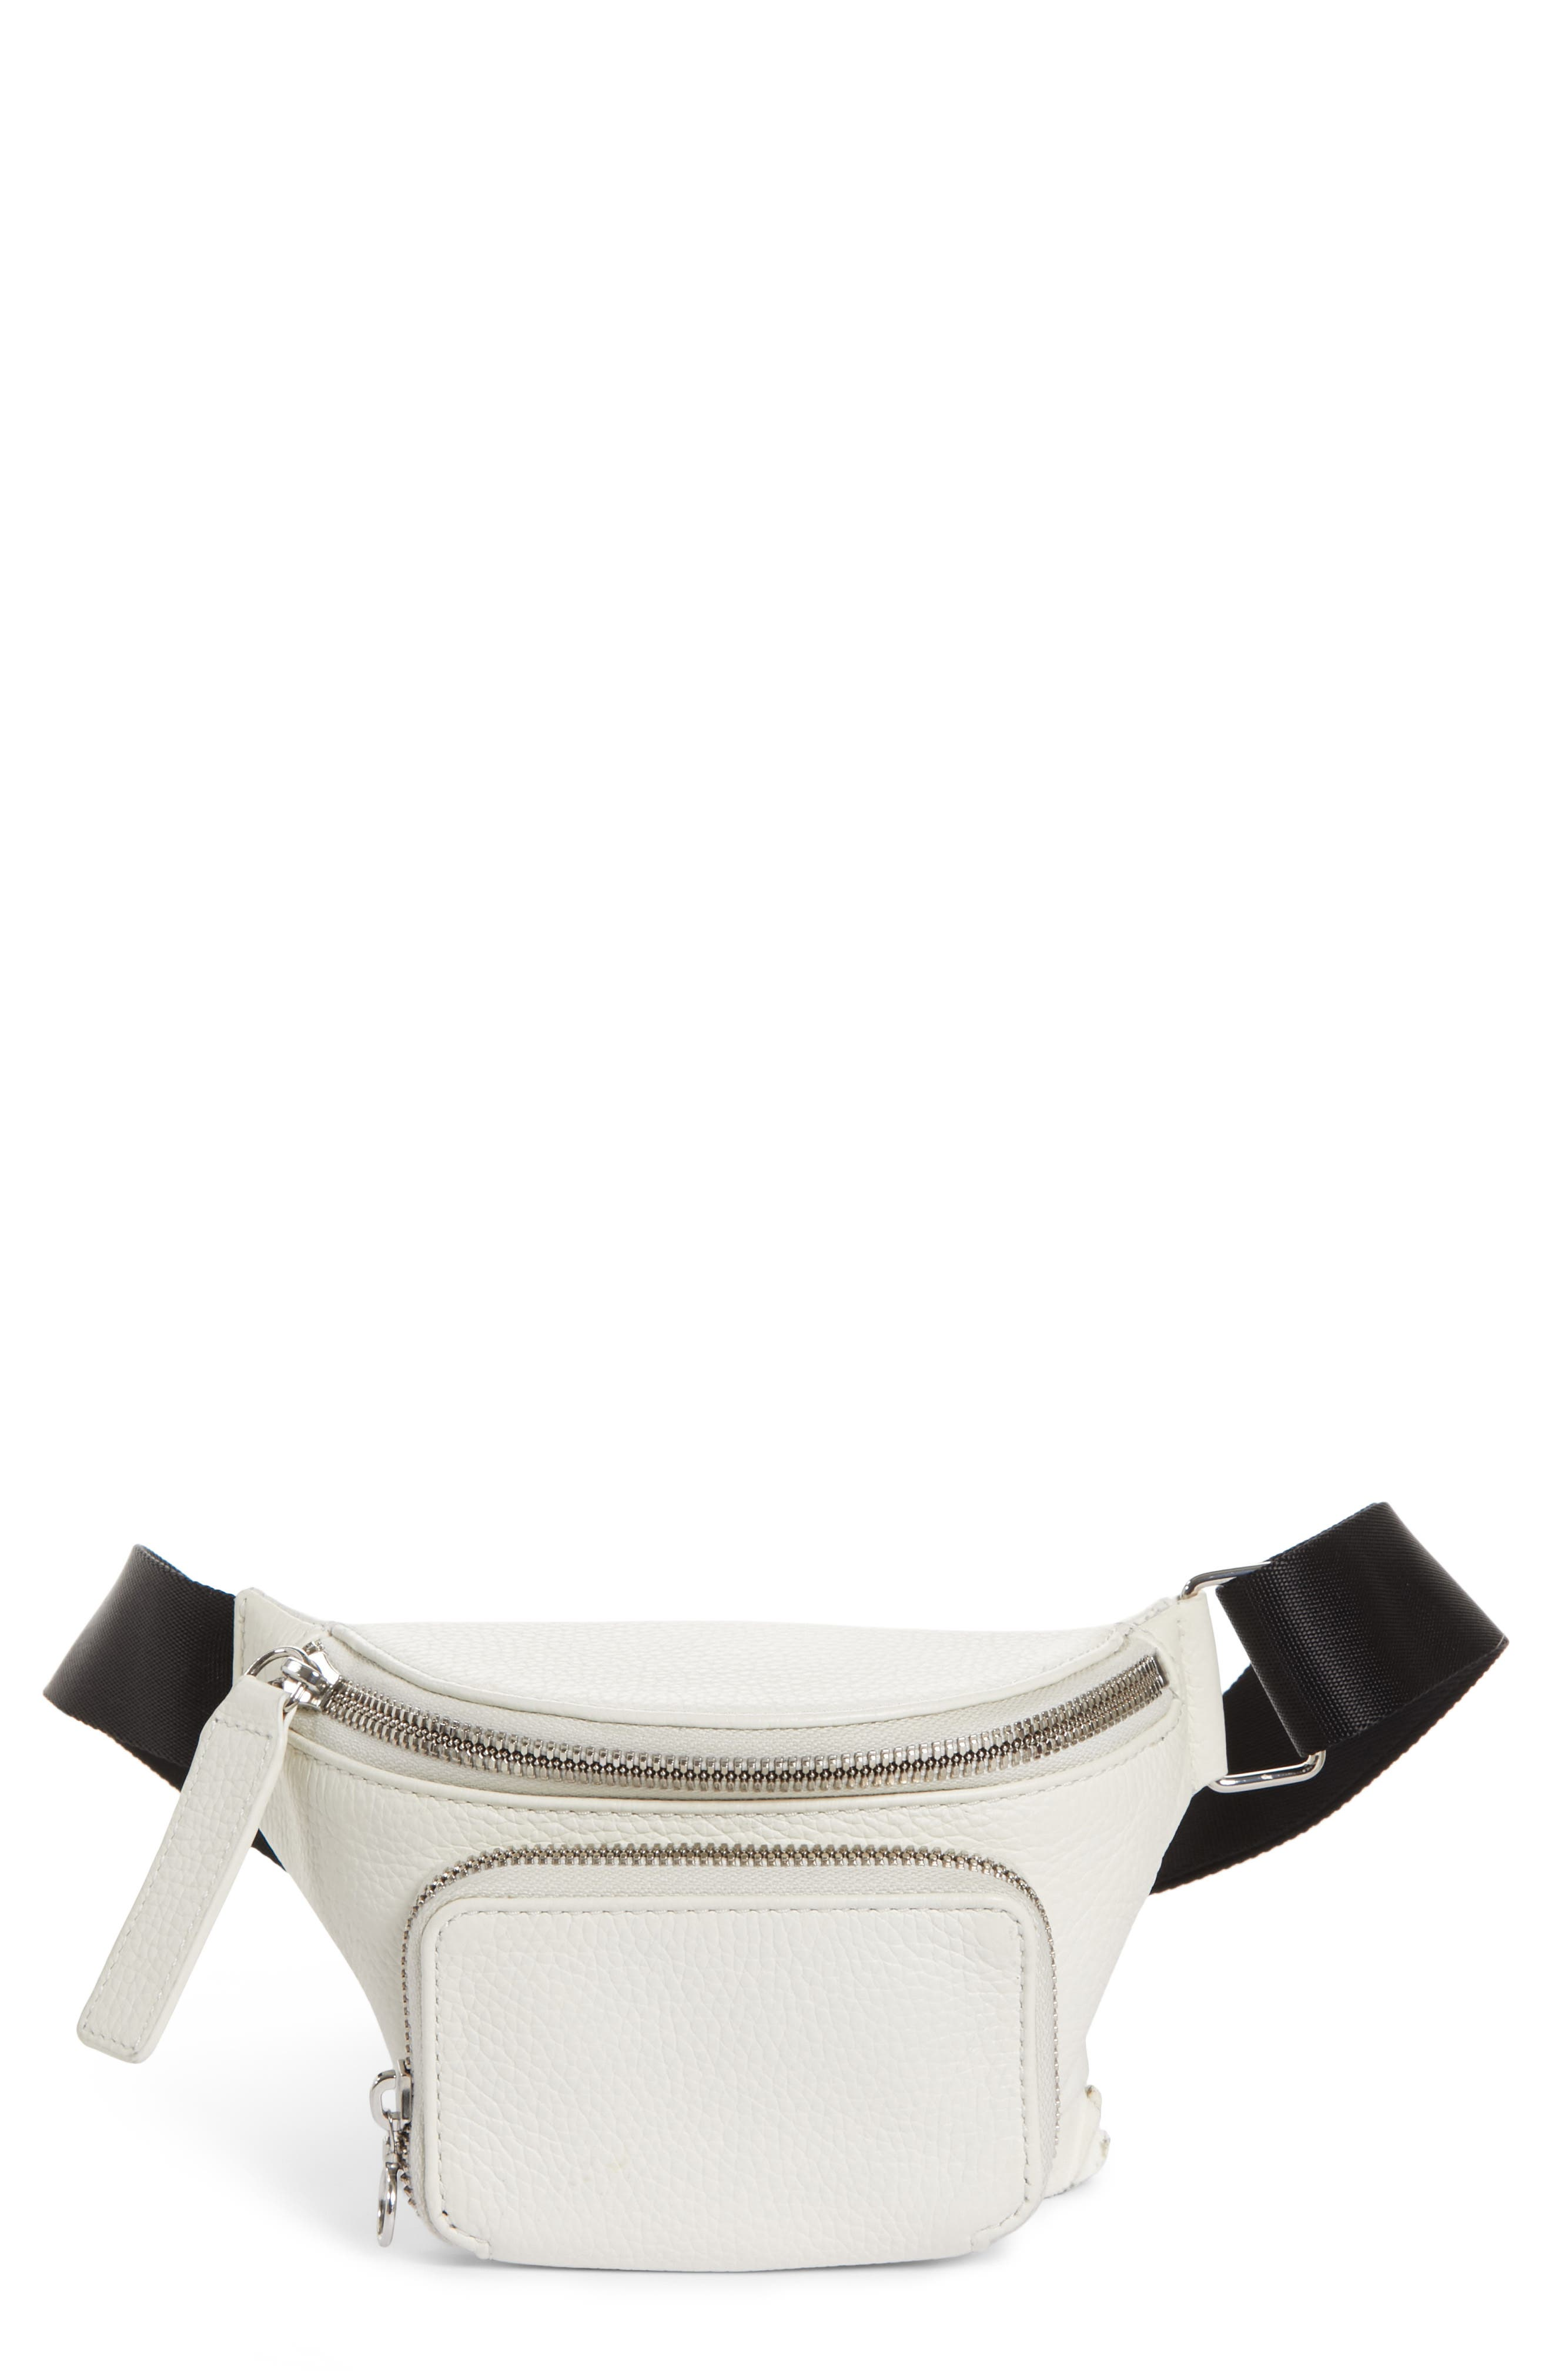 LEATHER BUM BAG - WHITE